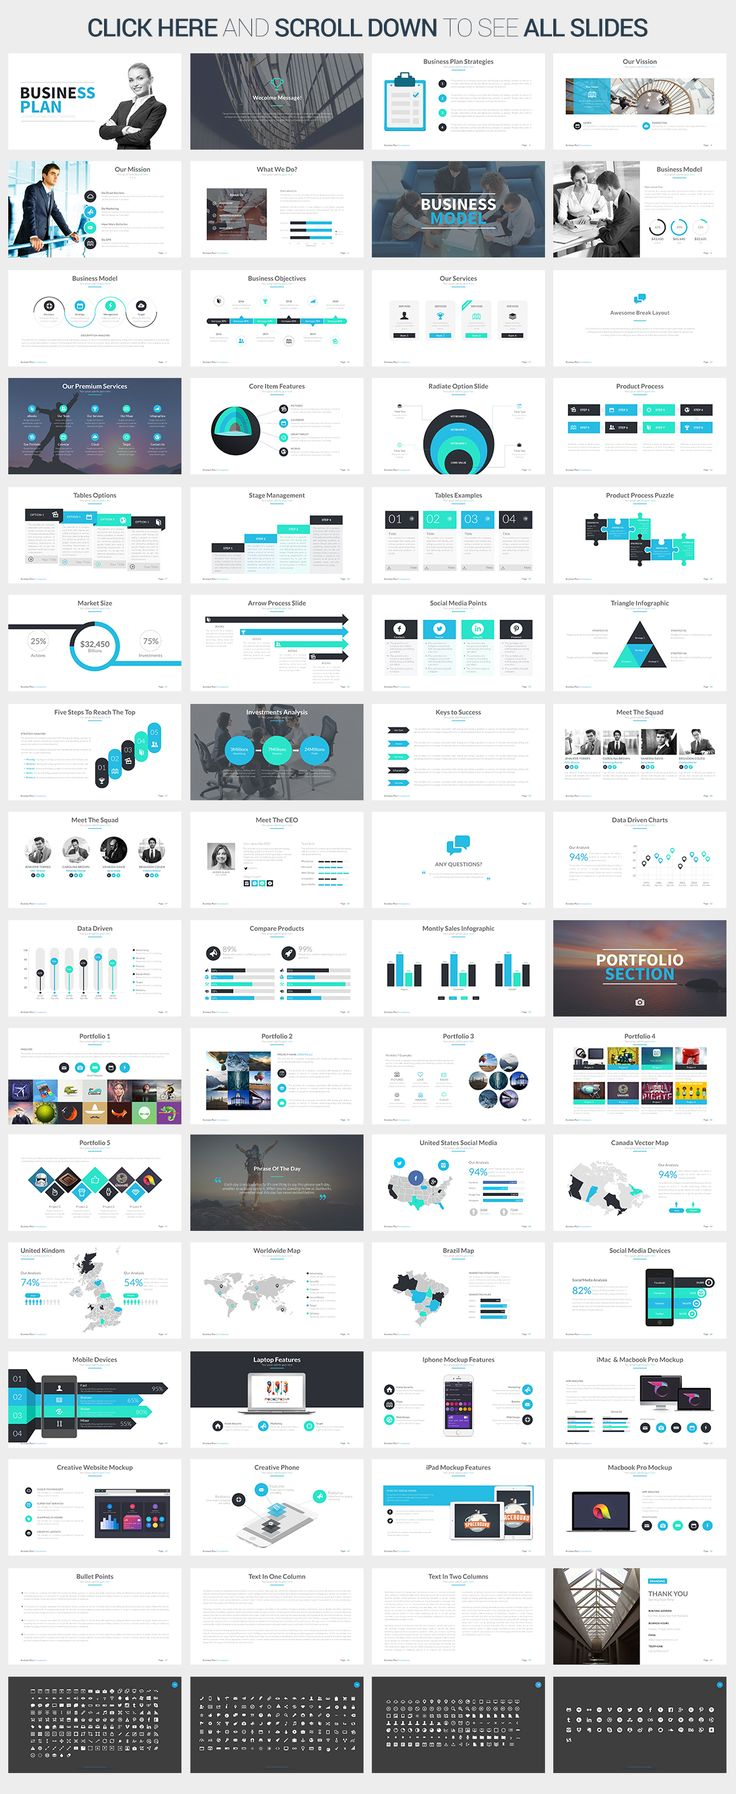 Best 25 business plan presentation ideas on pinterest business business plan powerpoint template by slidepro on creativemarket pronofoot35fo Gallery